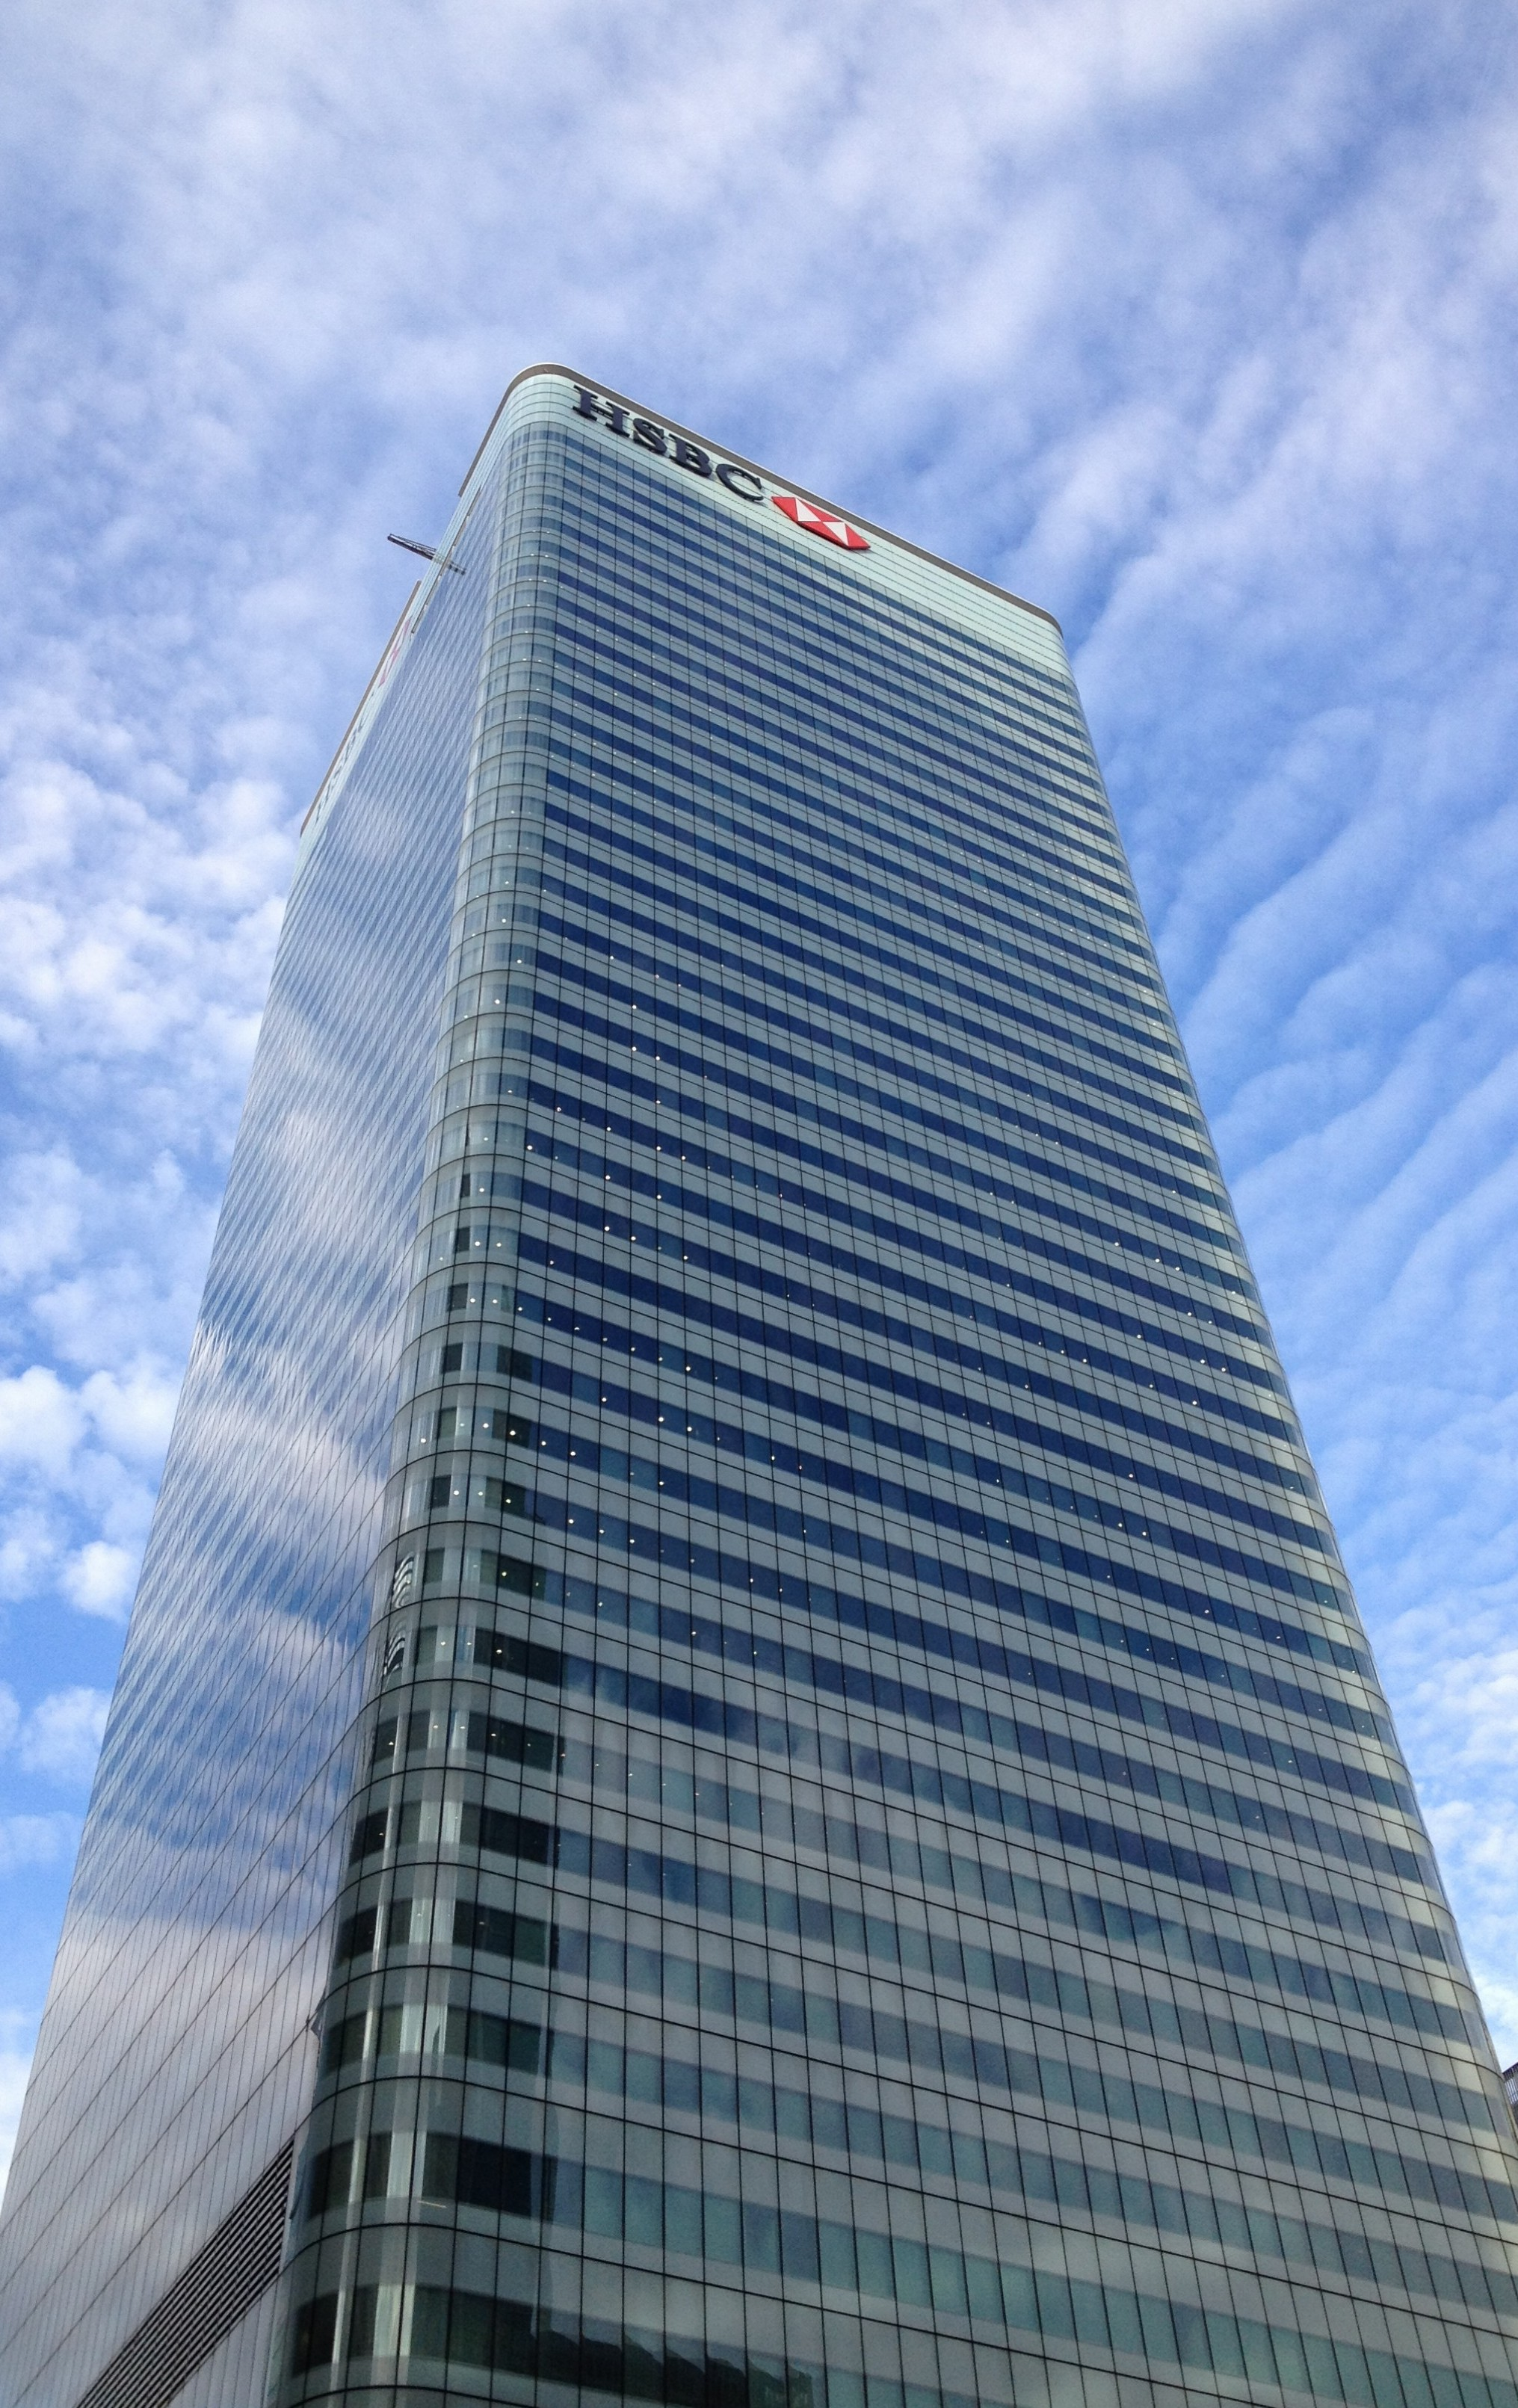 The banking sector and integrated reporting: focus on HSBC